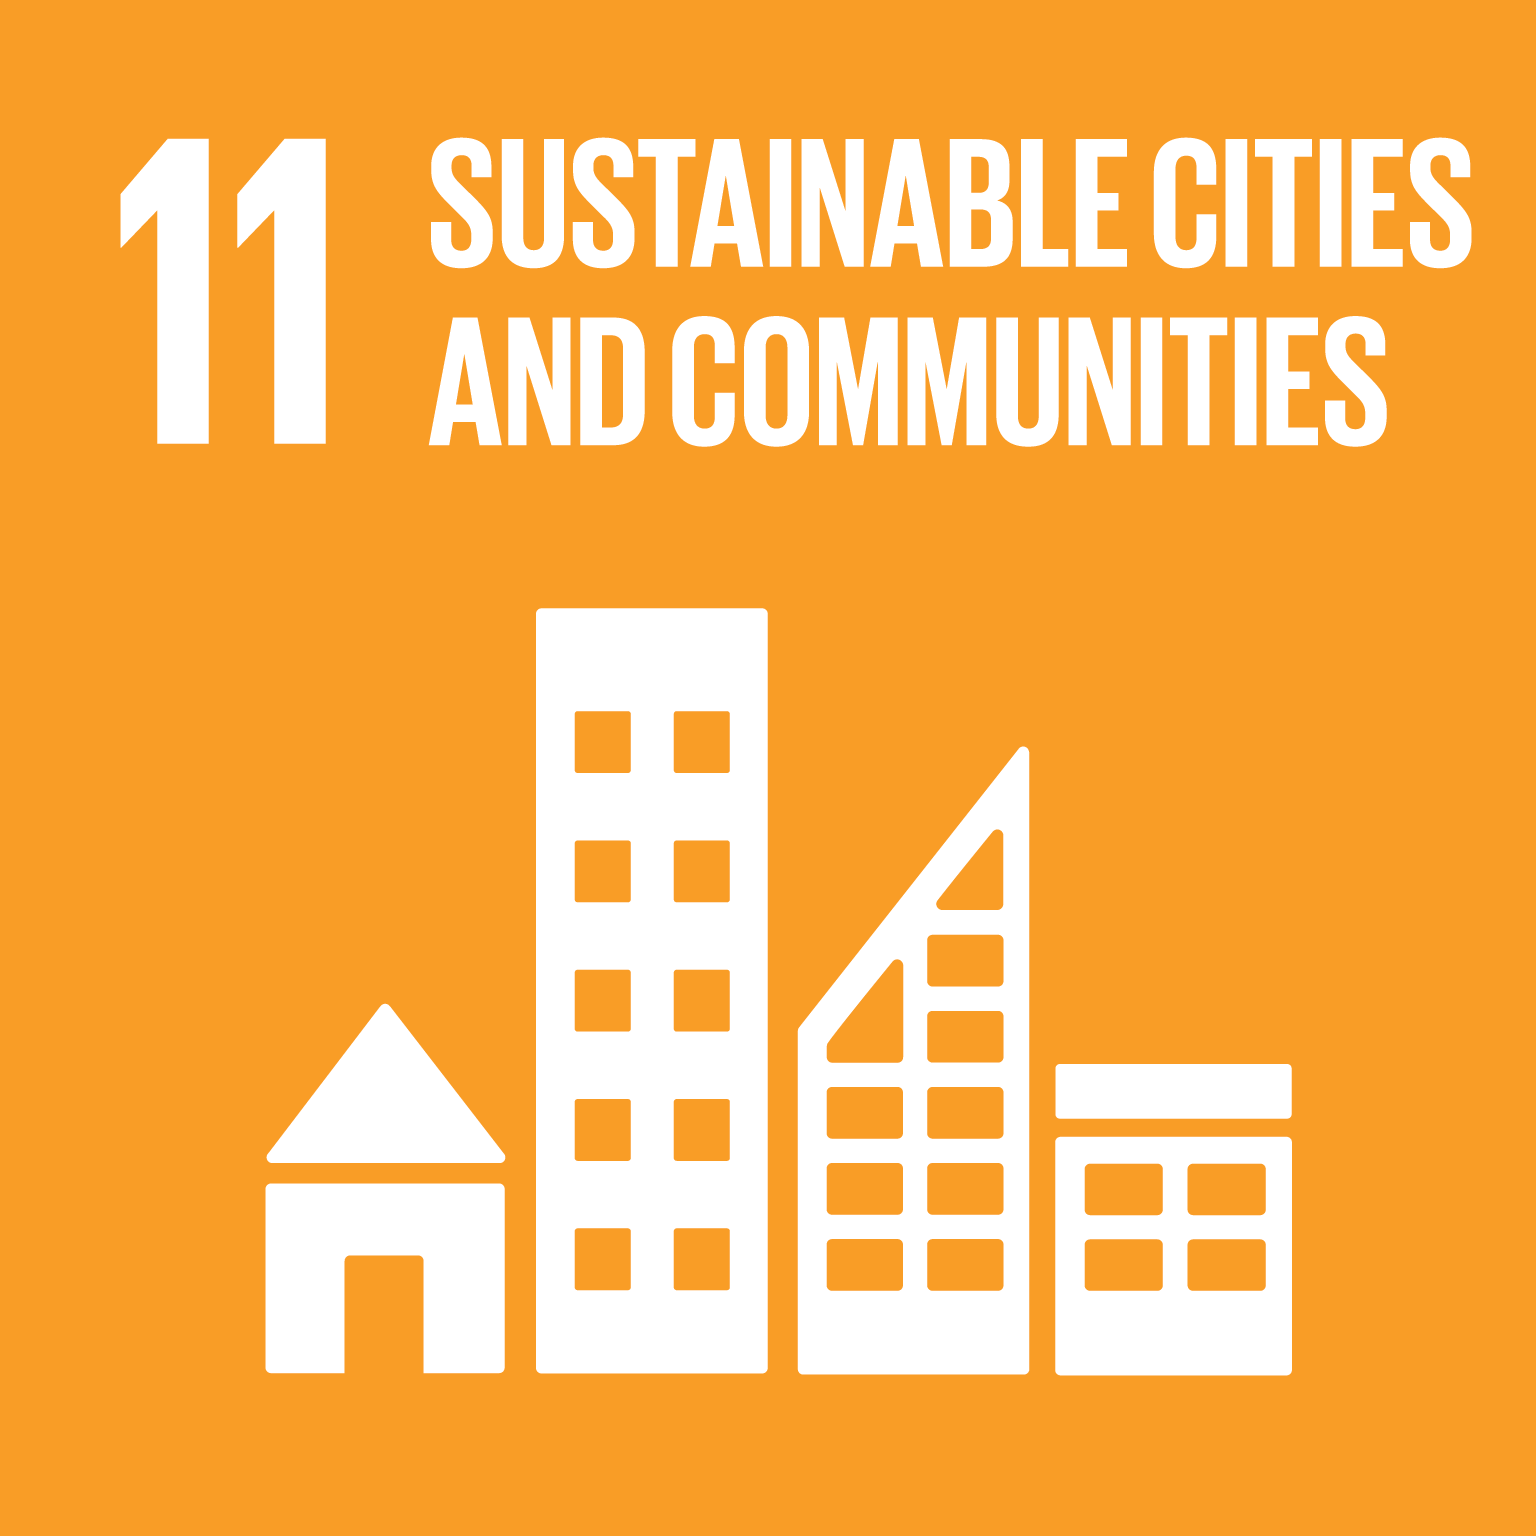 11 - Sustainable Cities & Communities